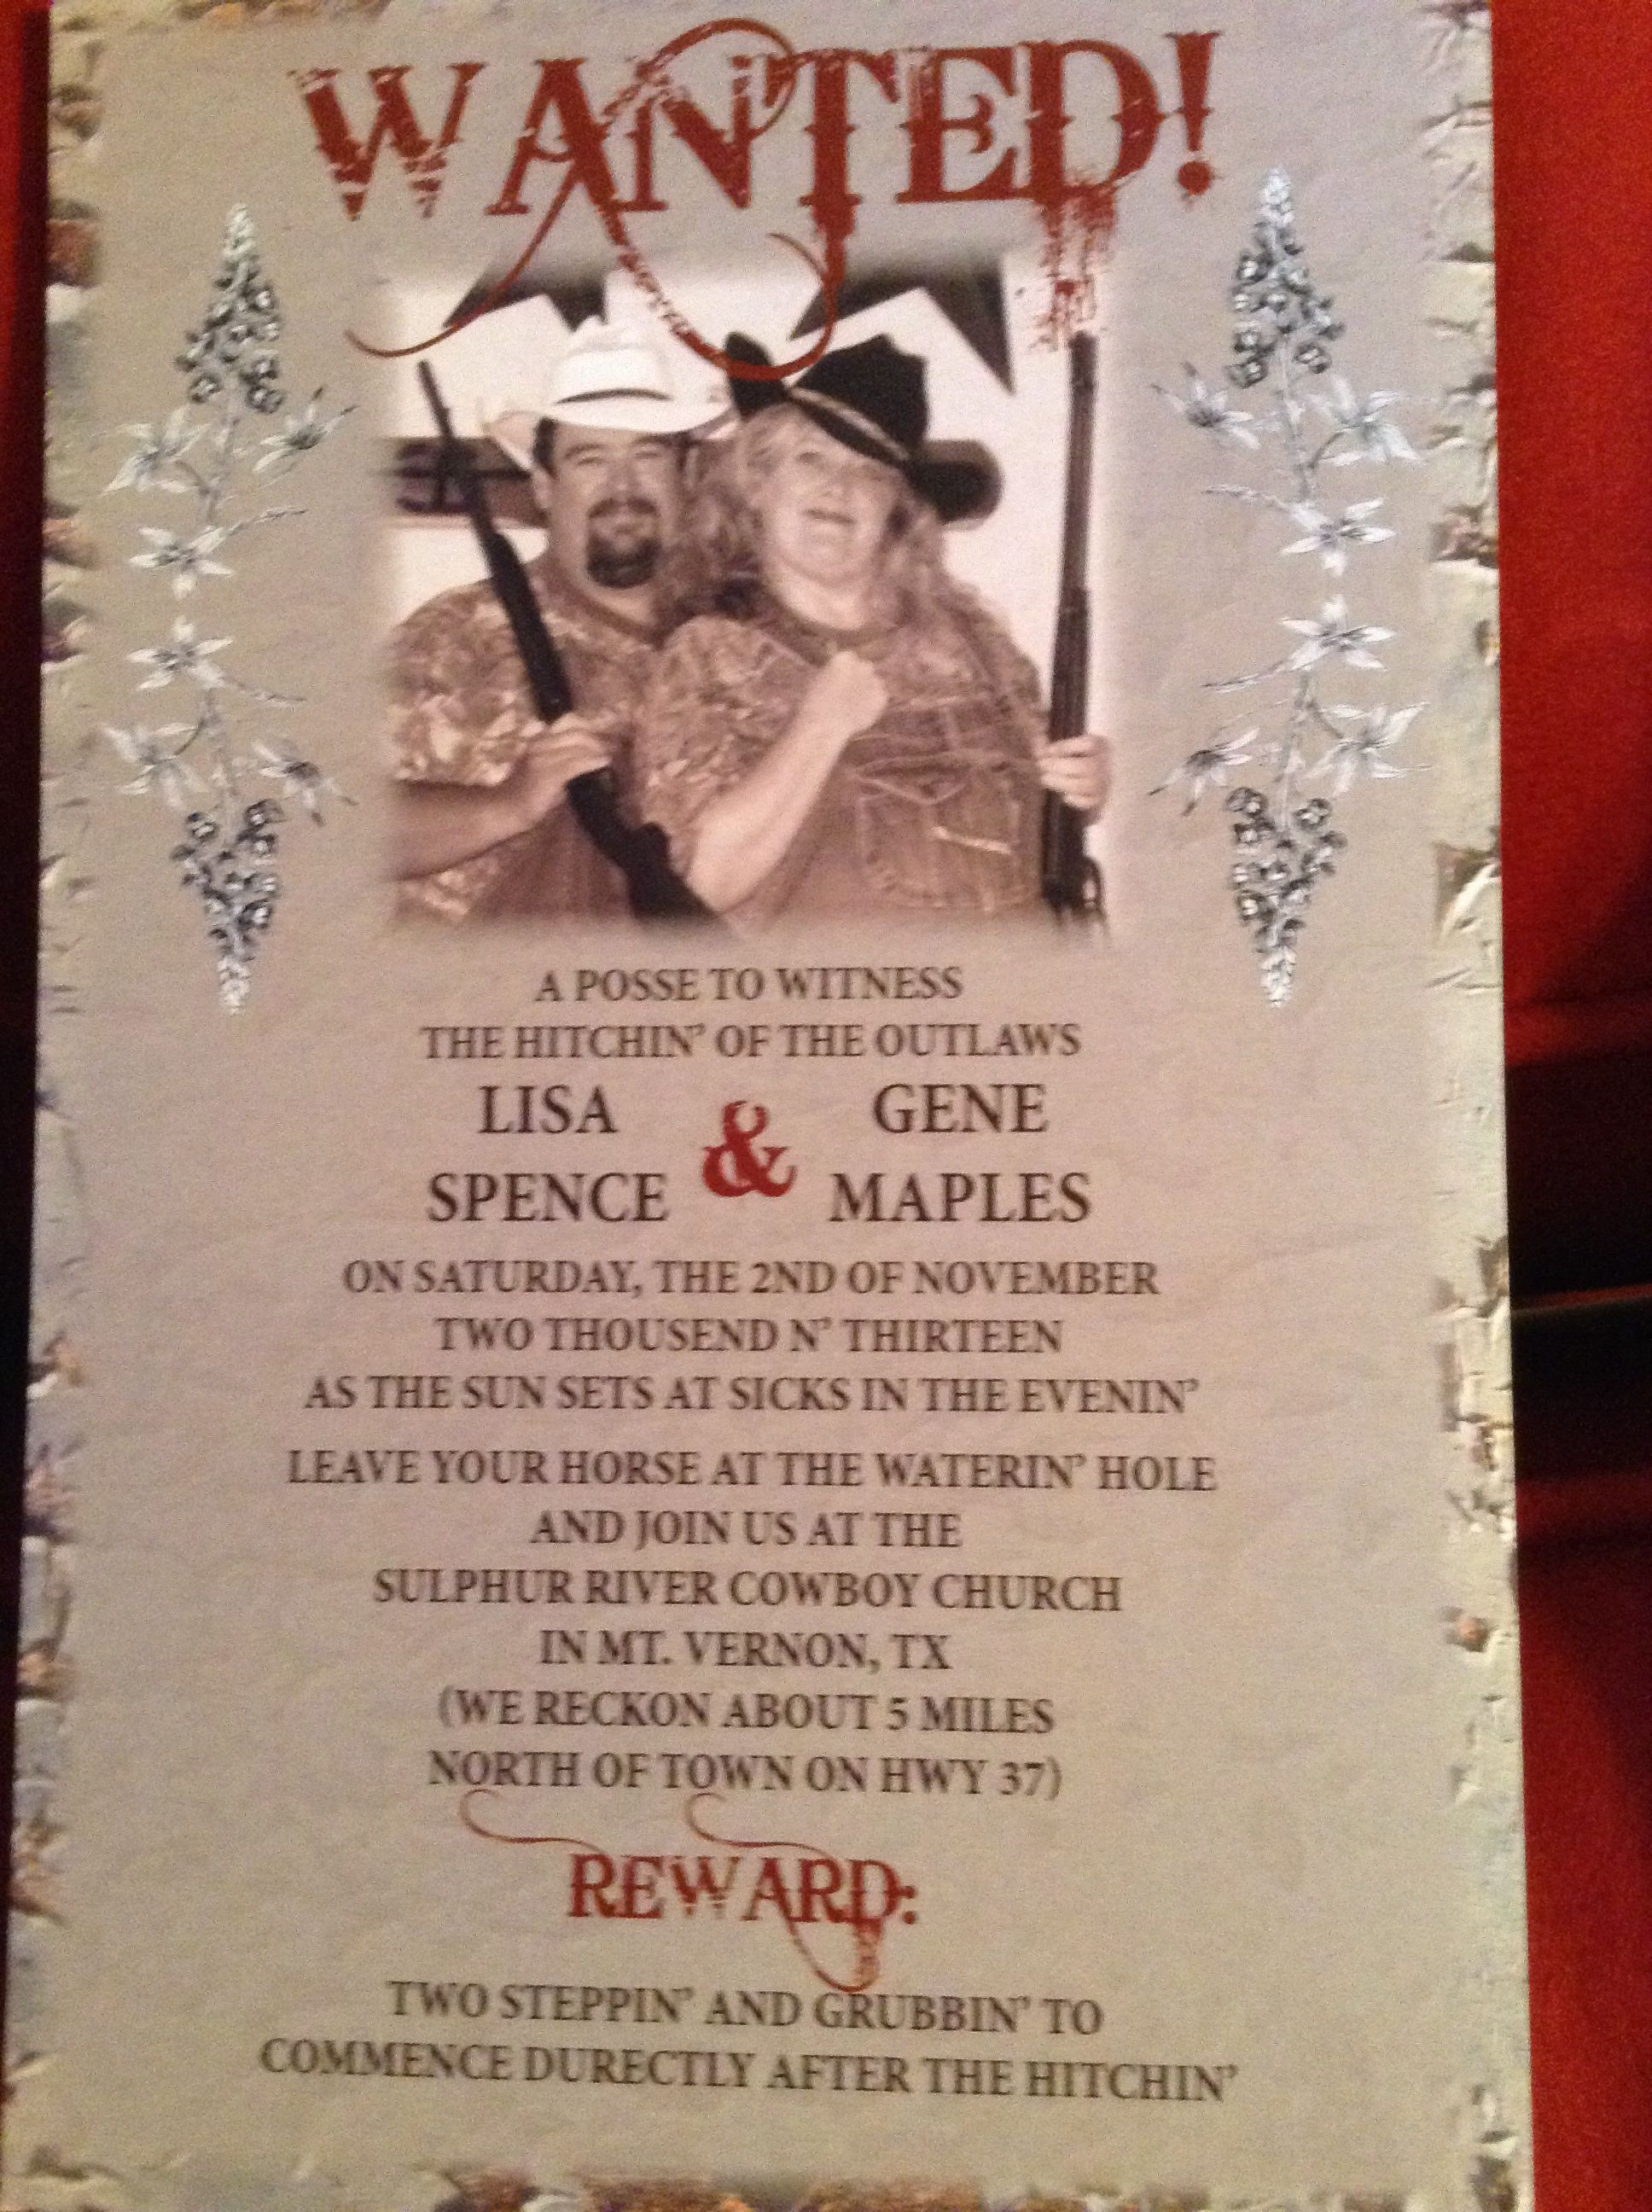 Redneck Wedding Invitations is one of our best ideas you might choose for invitation design